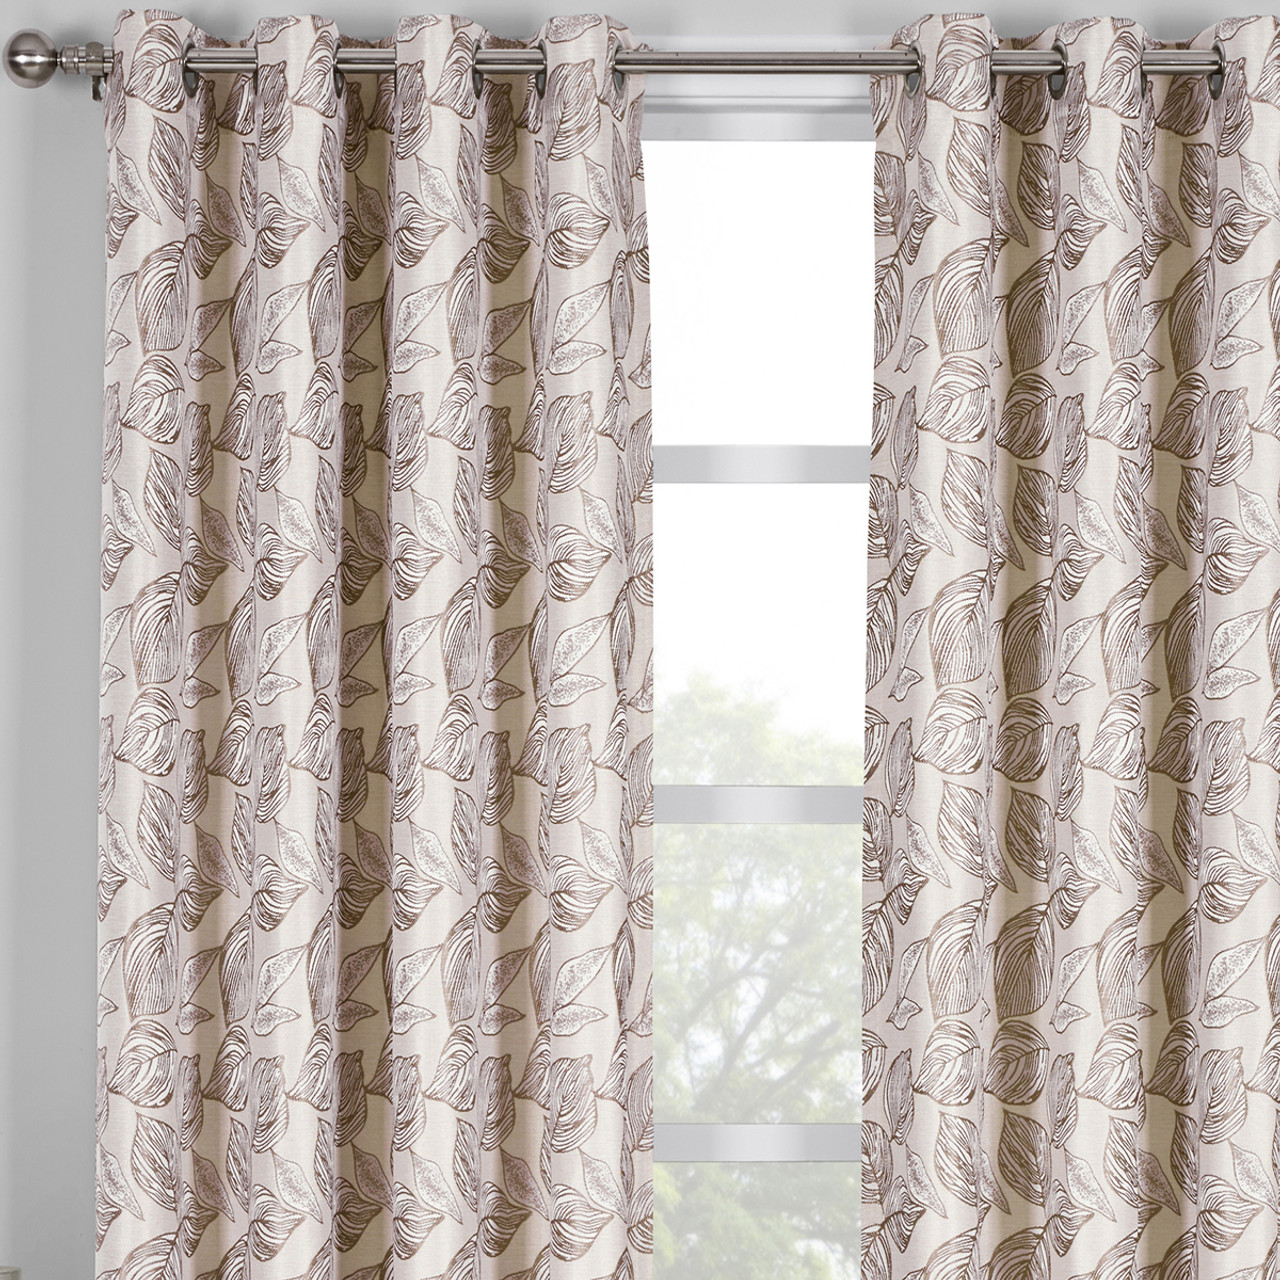 Jacquard Curtains Catalina Leaf Swirl Jacquard Curtain Panels Grommet Top Set Of 2